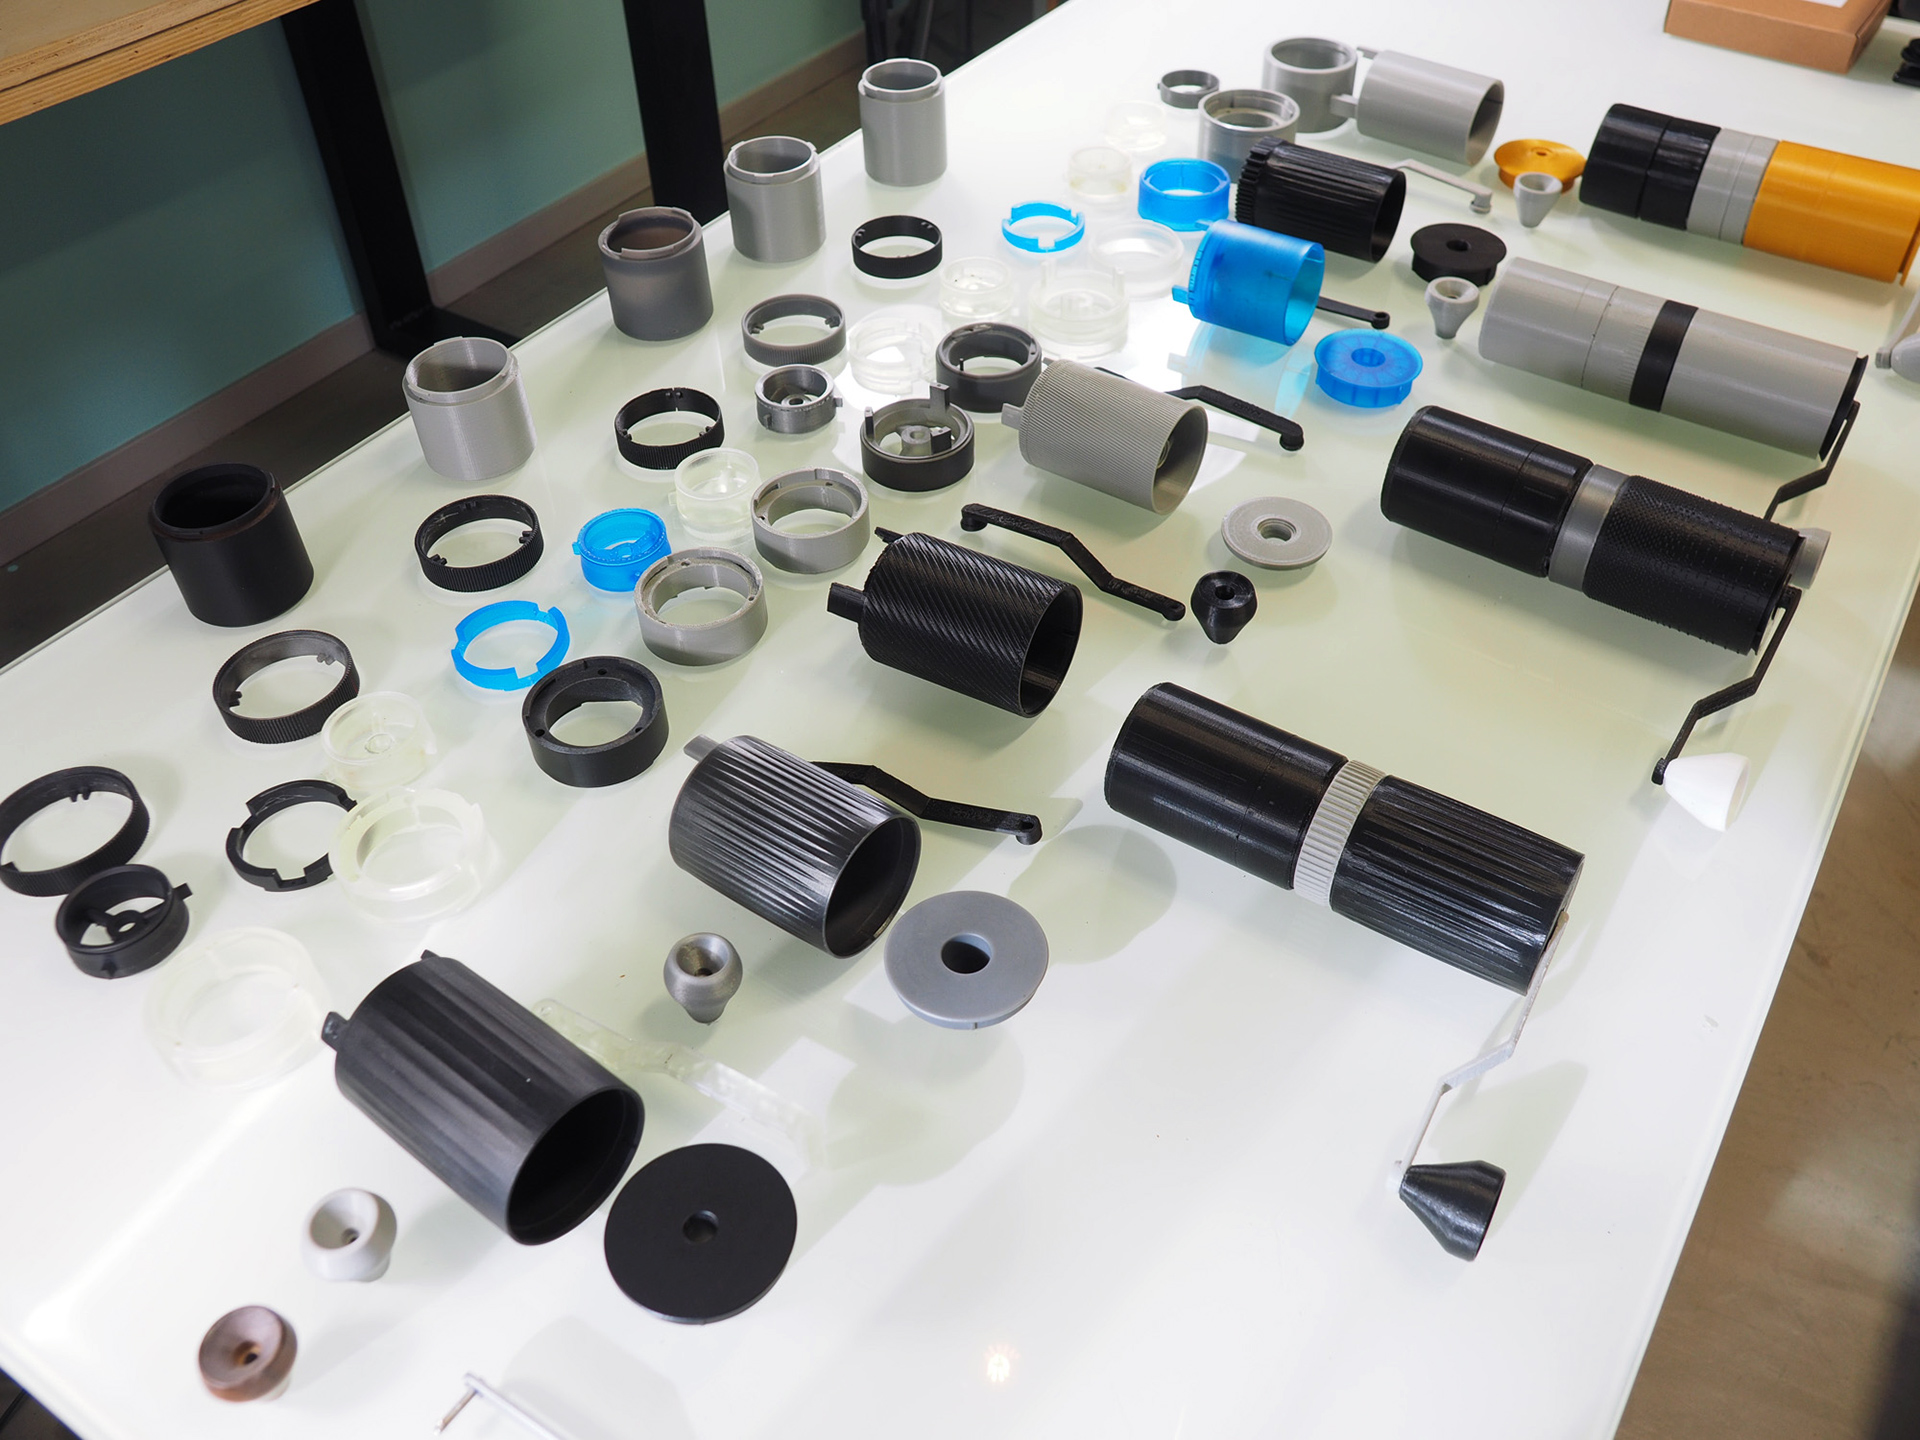 Various stages of HIKU prototypes on a table, laid out in chronological order.